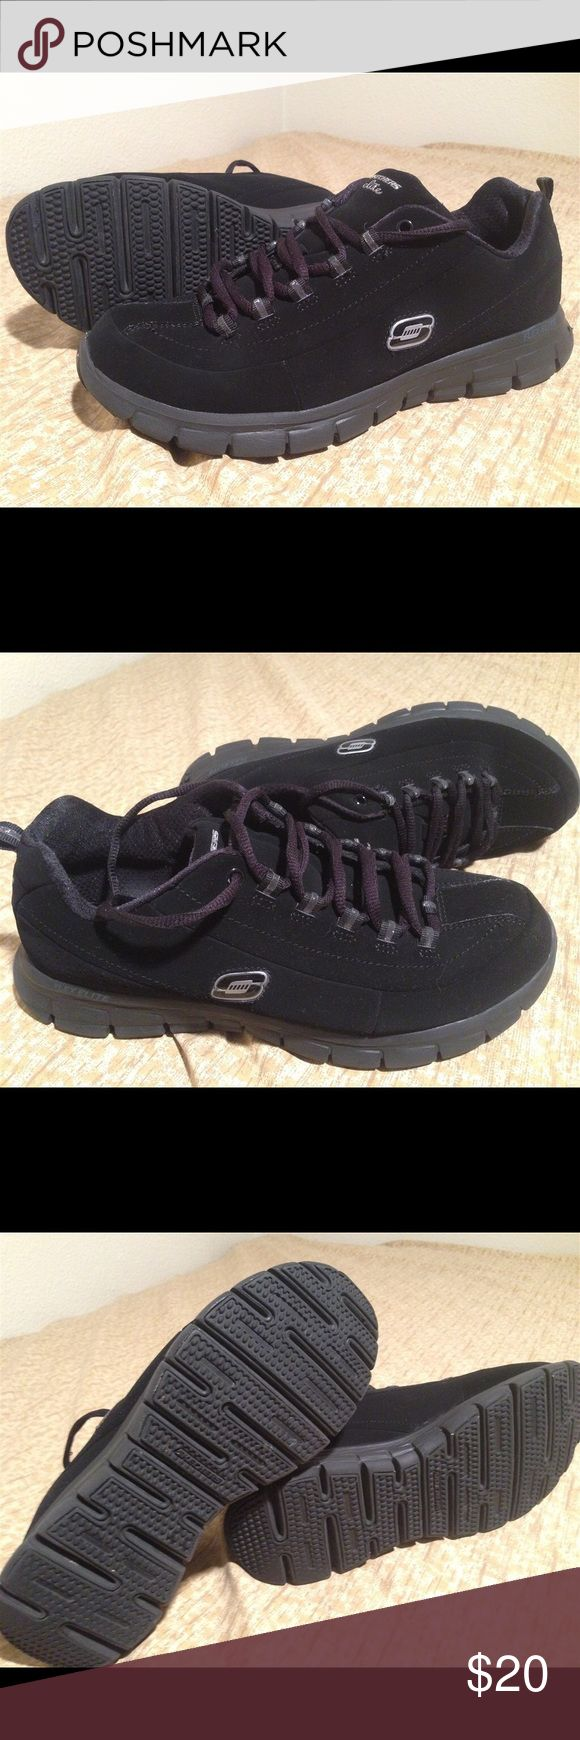 Skechers Elite Size 9 Black Shoes Sneakers Skechers Elite Size 9 Black Shoes Sneakers - Great condition! Well looked after and very lightly worn Skechers Shoes Athletic Shoes